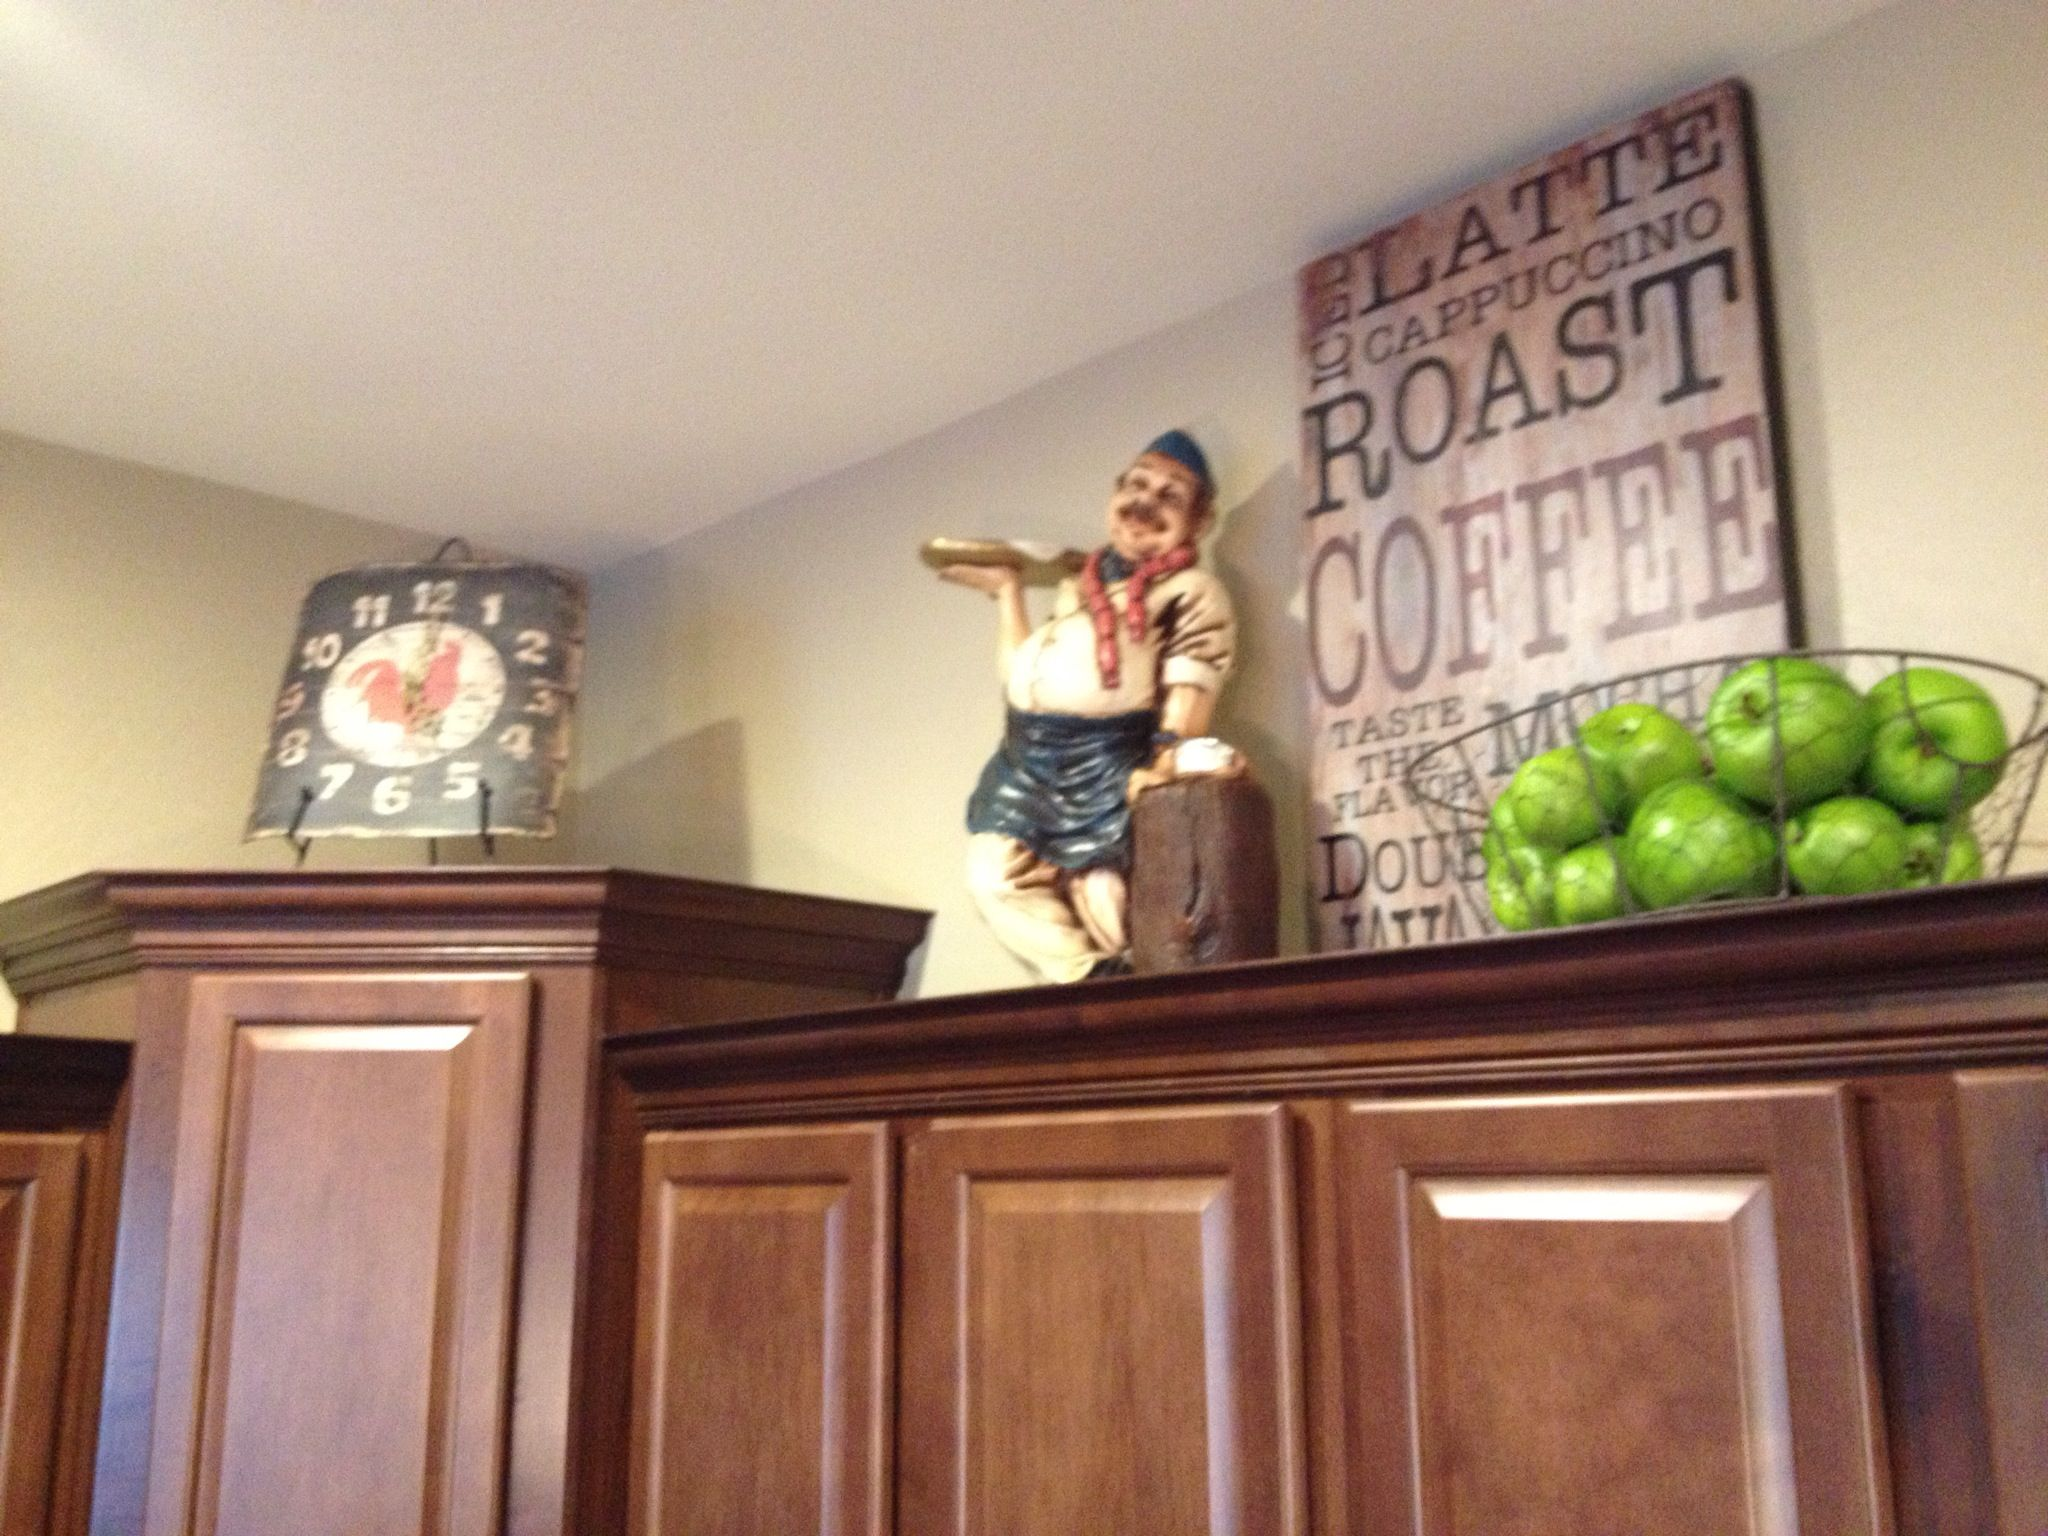 Kitchen Cupboard Tops above cabinet decor - i want to make that cute coffee sign for the